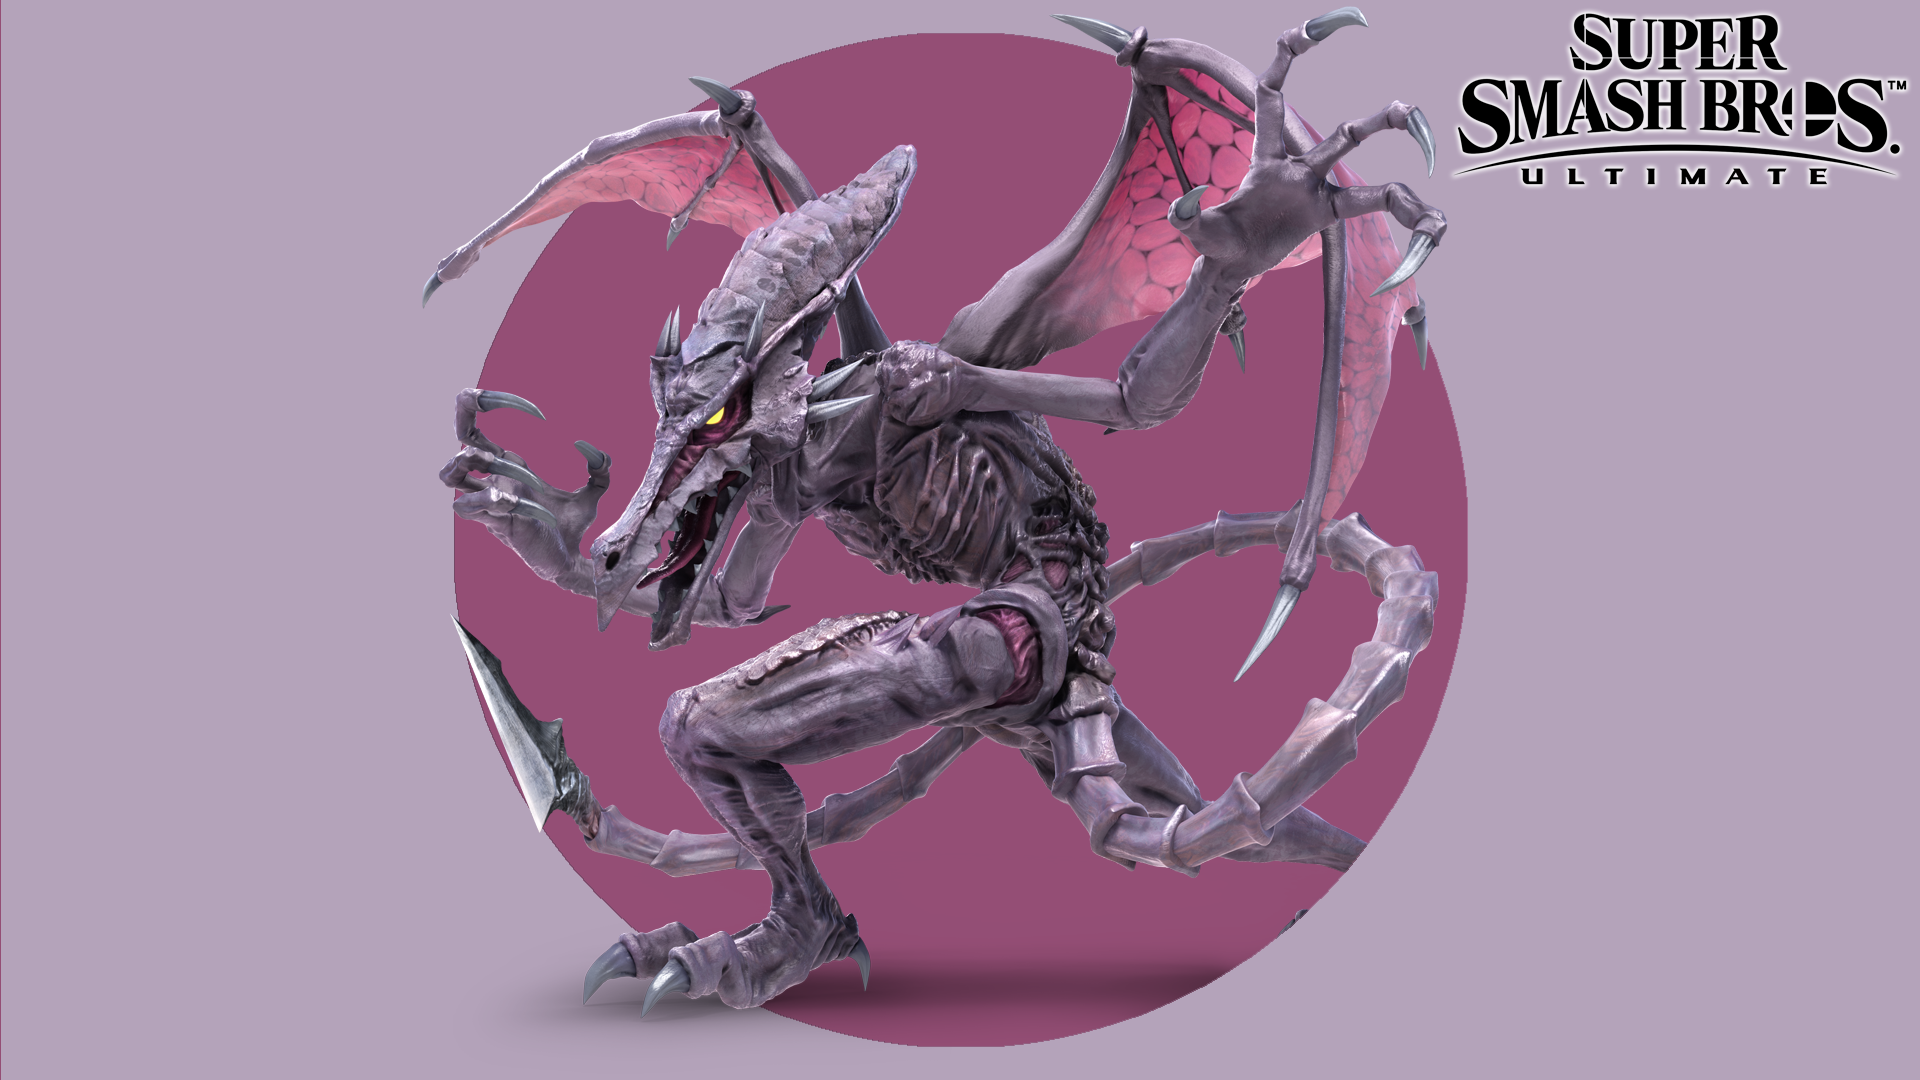 Super Smash Bros Ultimate Ridley Wallpaper Hd Wallpaper Background Image 1920x1080 Id 930722 Wallpaper Abyss